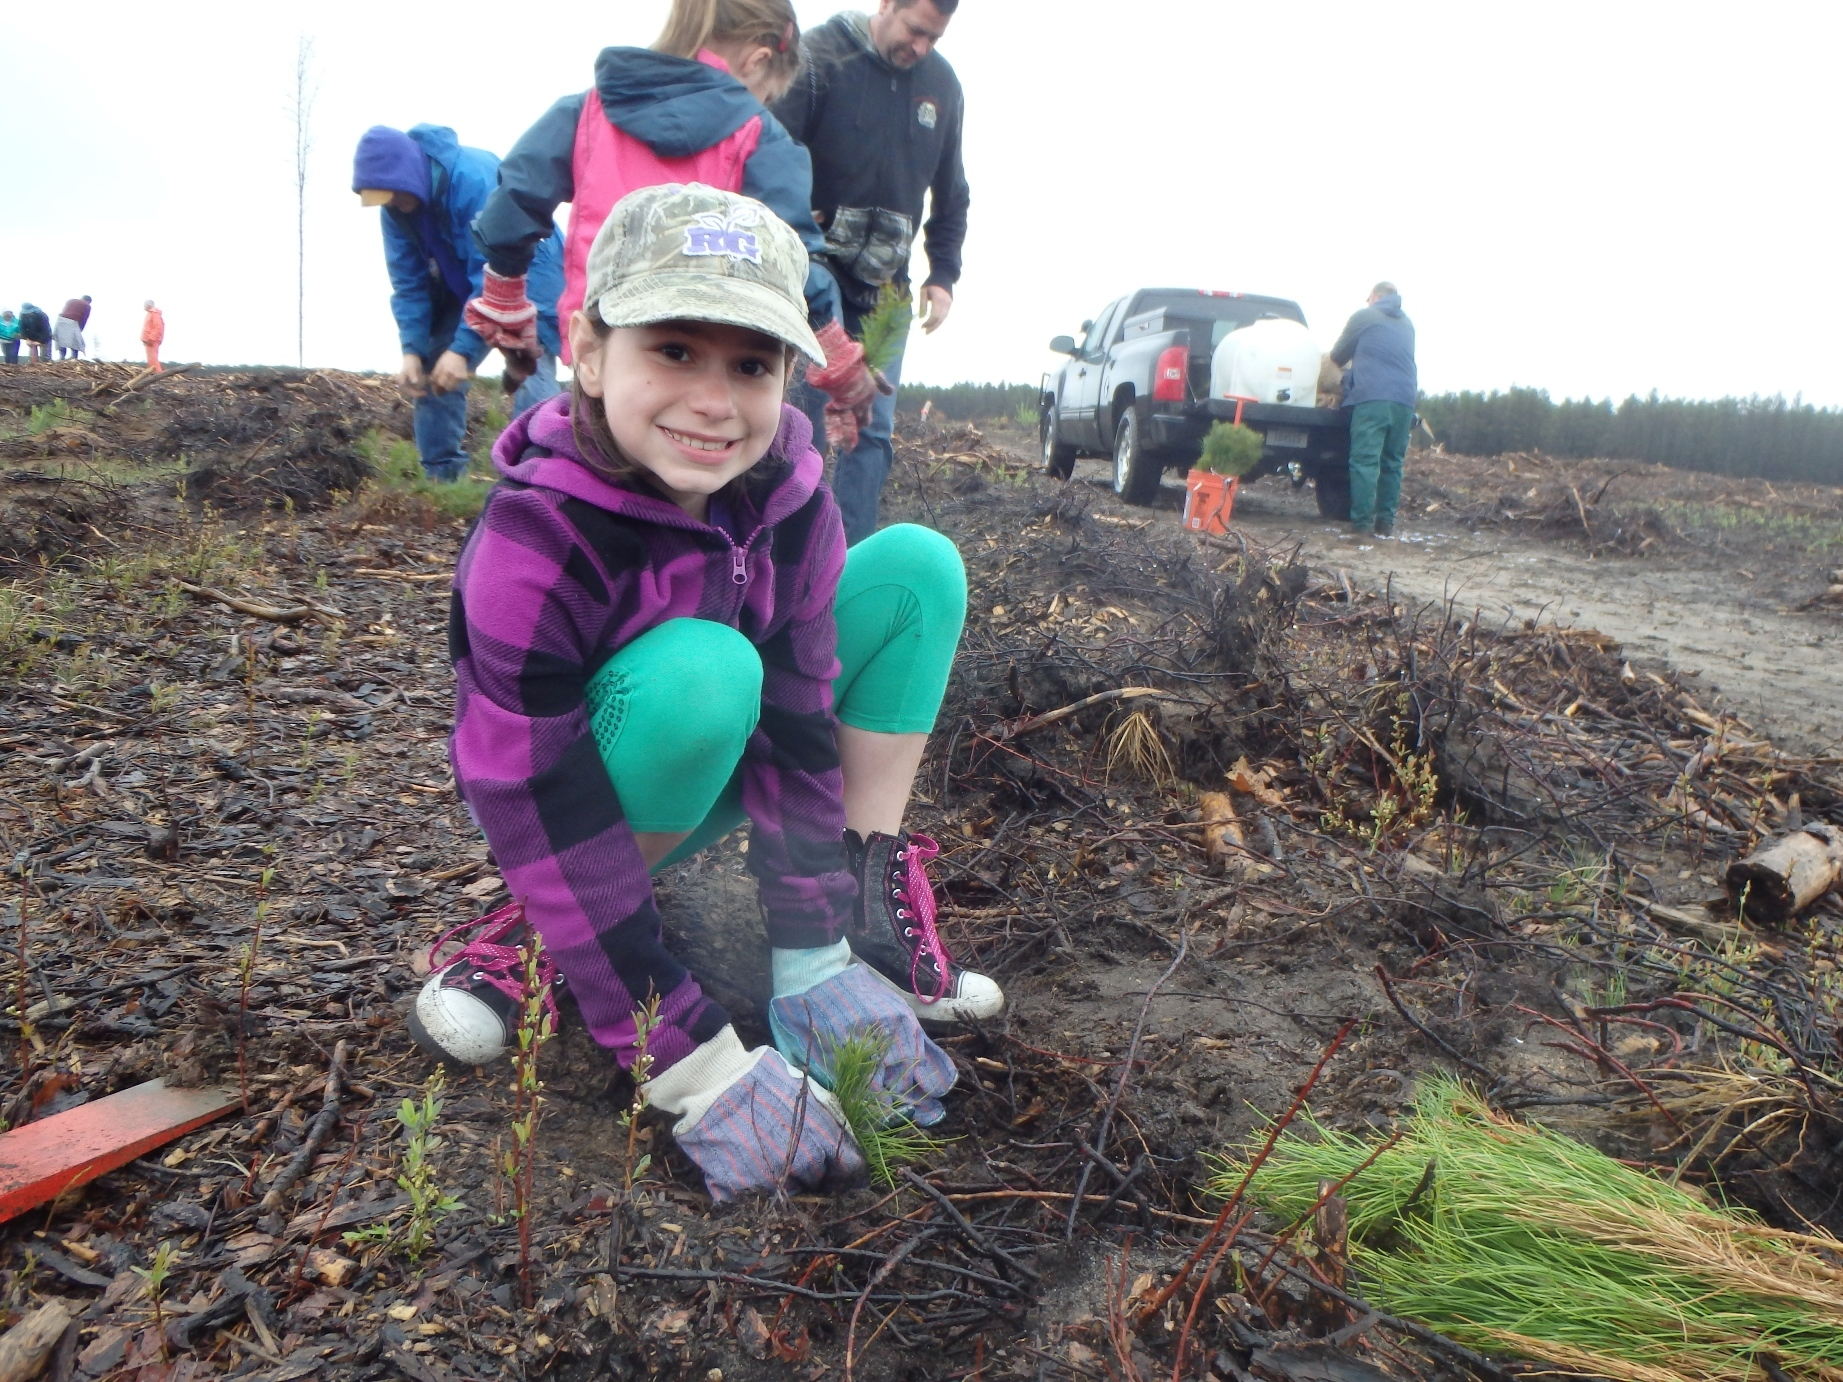 Volunteers plant 2-3 acres of jack pines every year to further the recovery of the Kirtland's warbler by creating habitat.